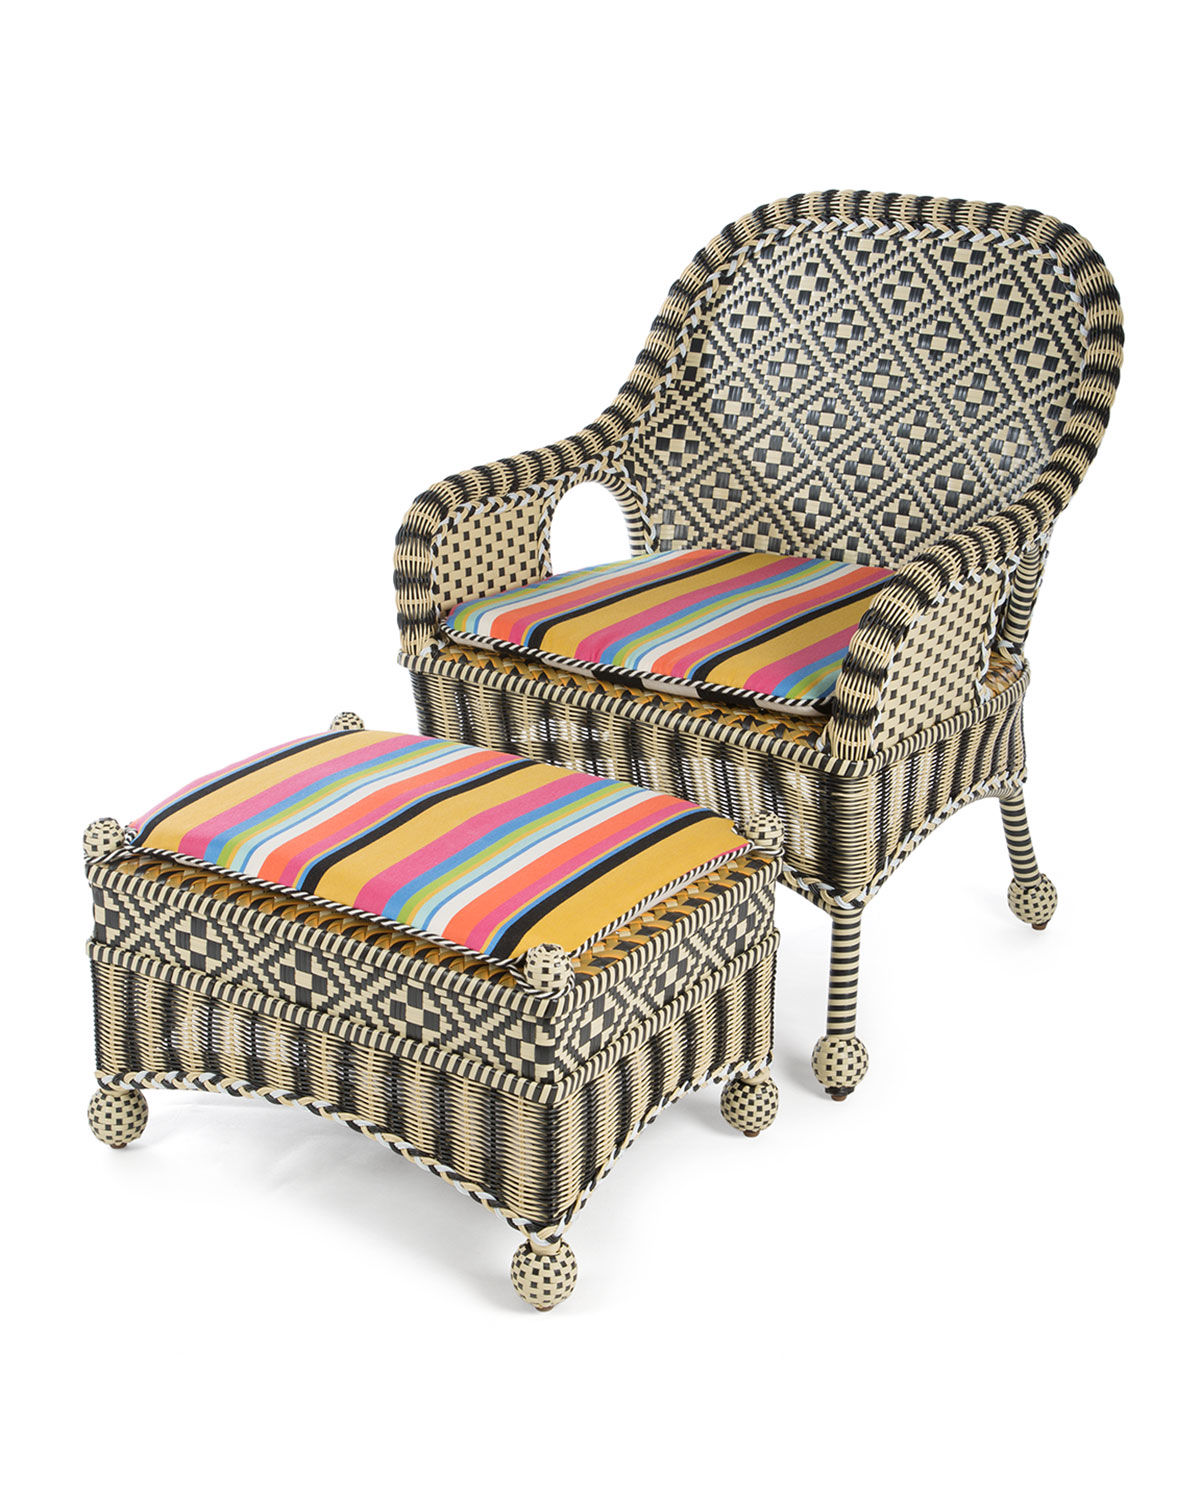 Courtyard Outdoor Chair  sc 1 st  Neiman Marcus & MacKenzie-Childs Morning Glory Outdoor Chair | Neiman Marcus